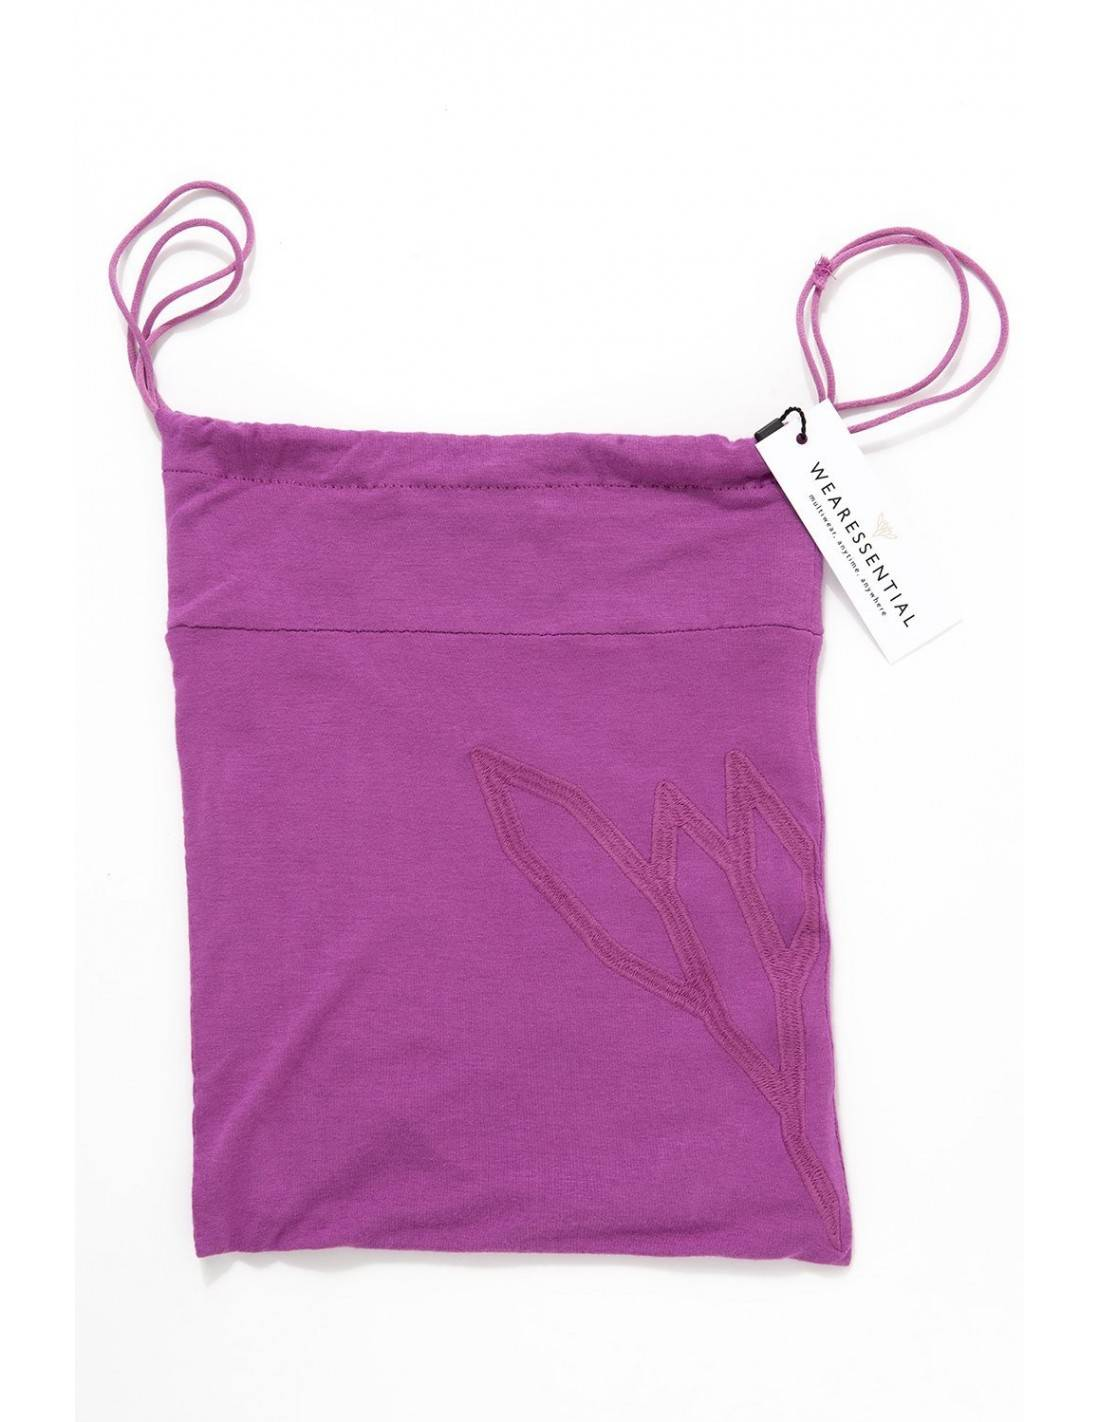 YOGAESSENTIAL POCHETTE YOGA MULTIUSO - BAMBOO - Radiant Orchid